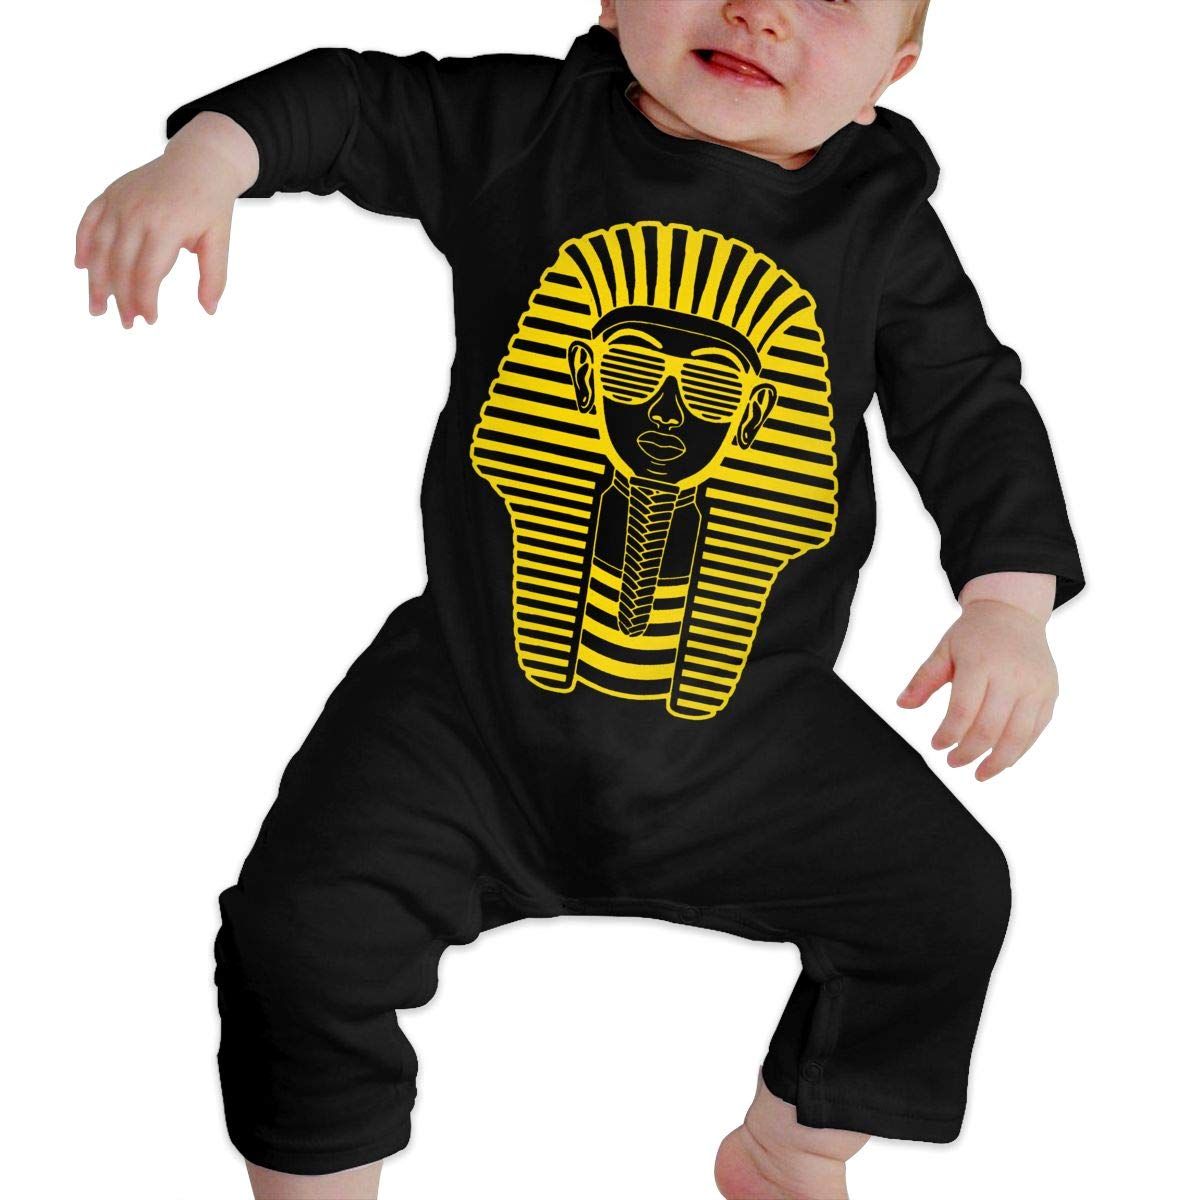 Fasenix Pharaoh of Egypt Printed Newborn Baby Bodysuit Long Sleeve Overalls Outfits Clothes Romper Jumpsuit for Baby Boy Girl